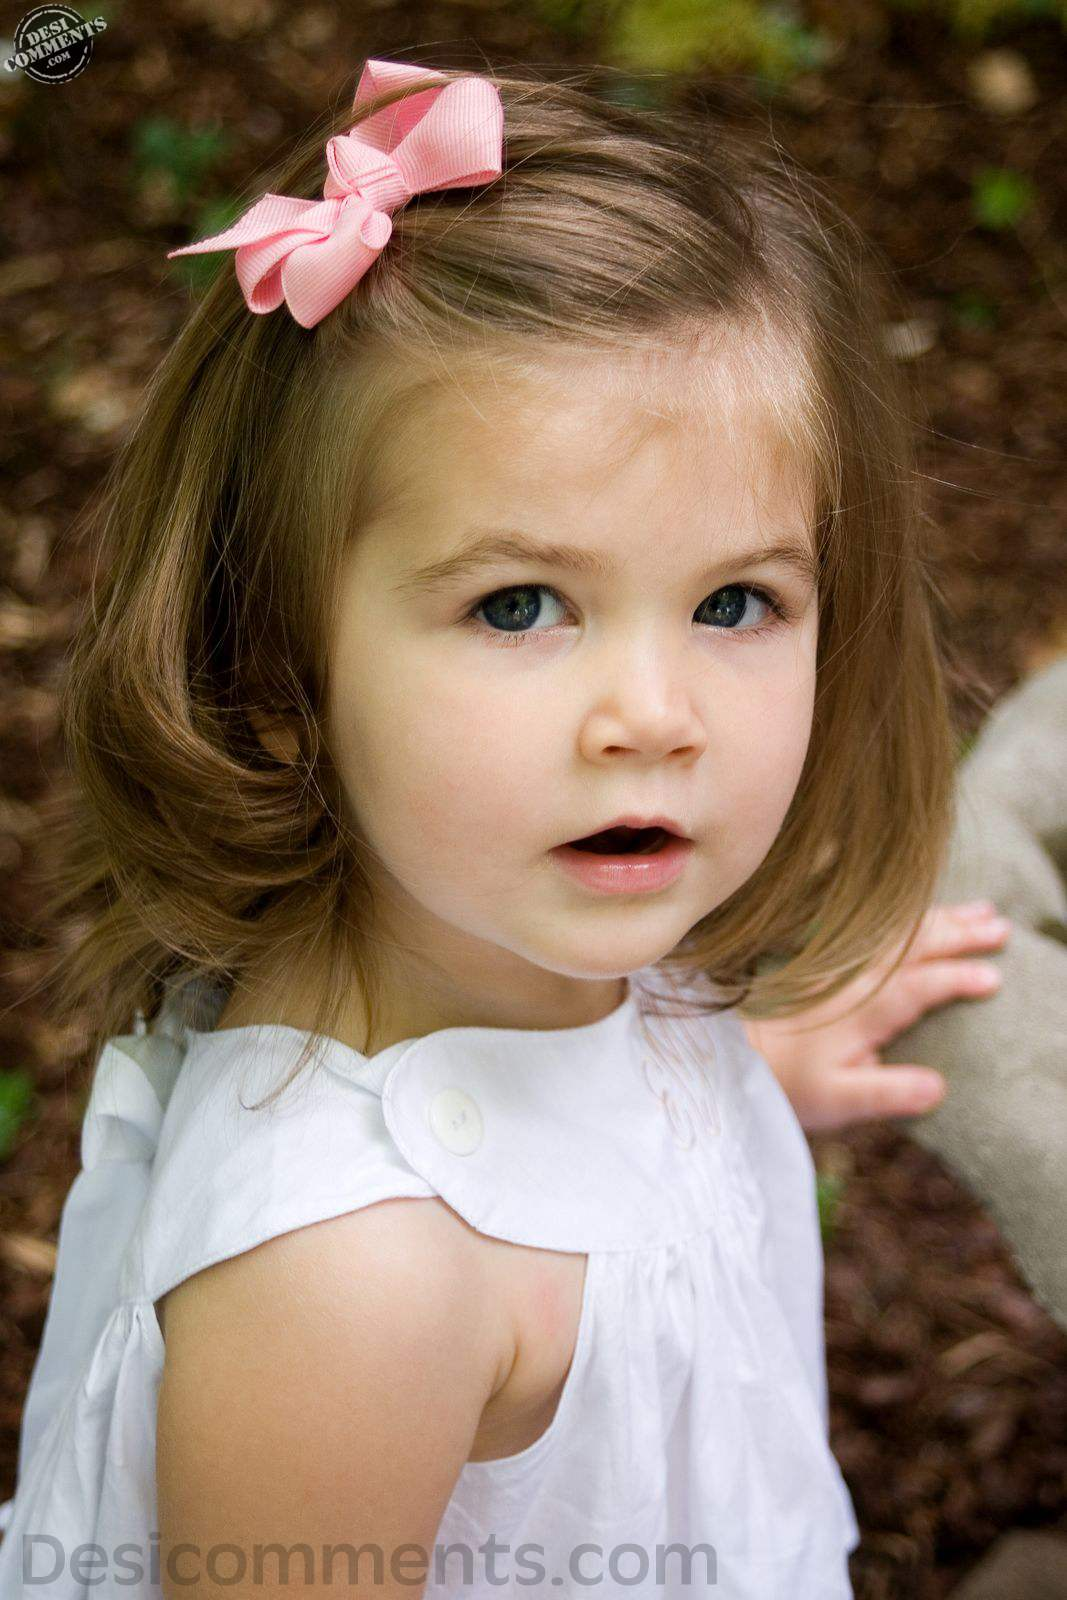 cute baby girl - desicomments